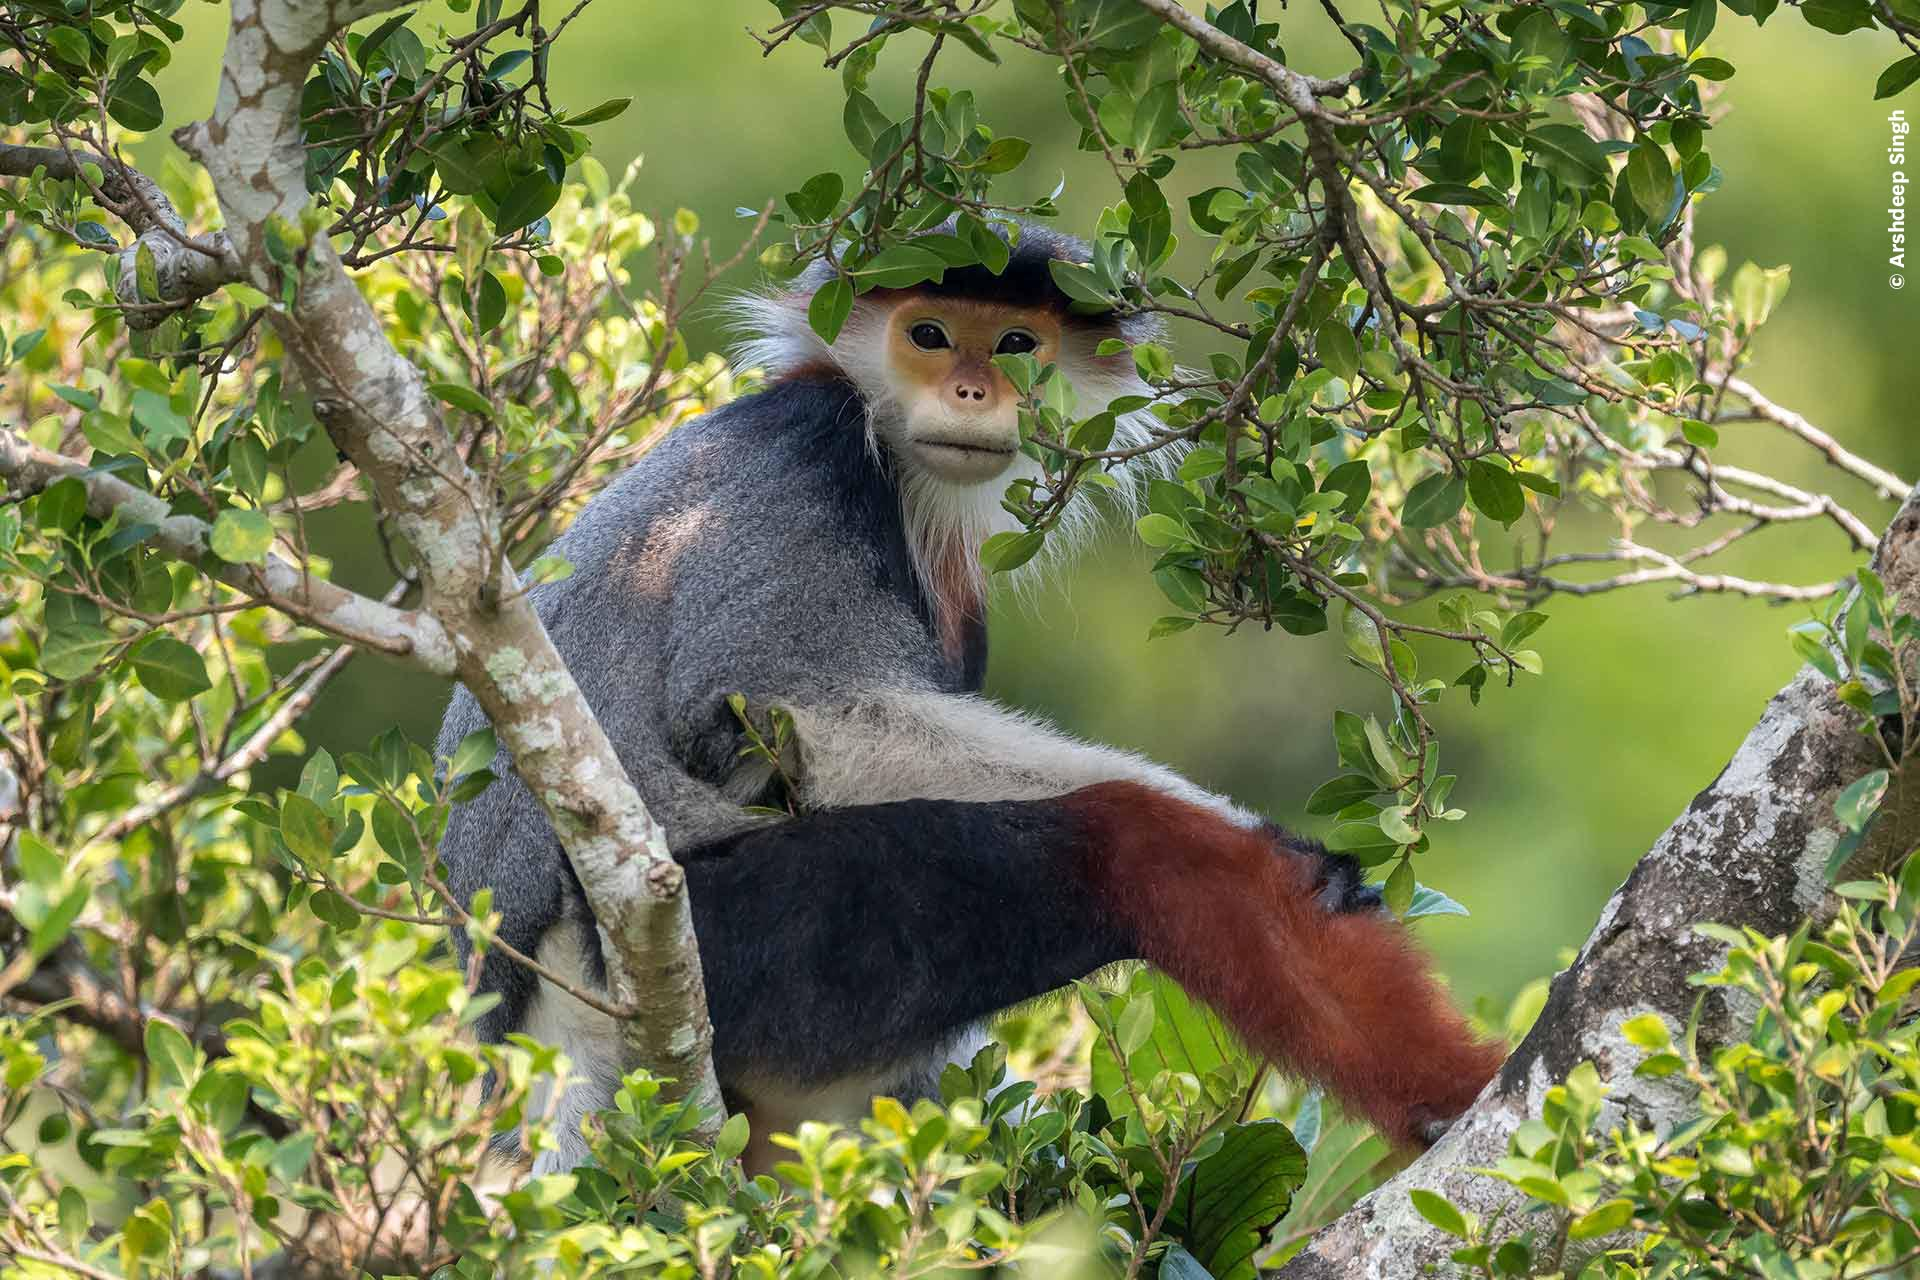 A monkey in a tree gazes calmly at the camera